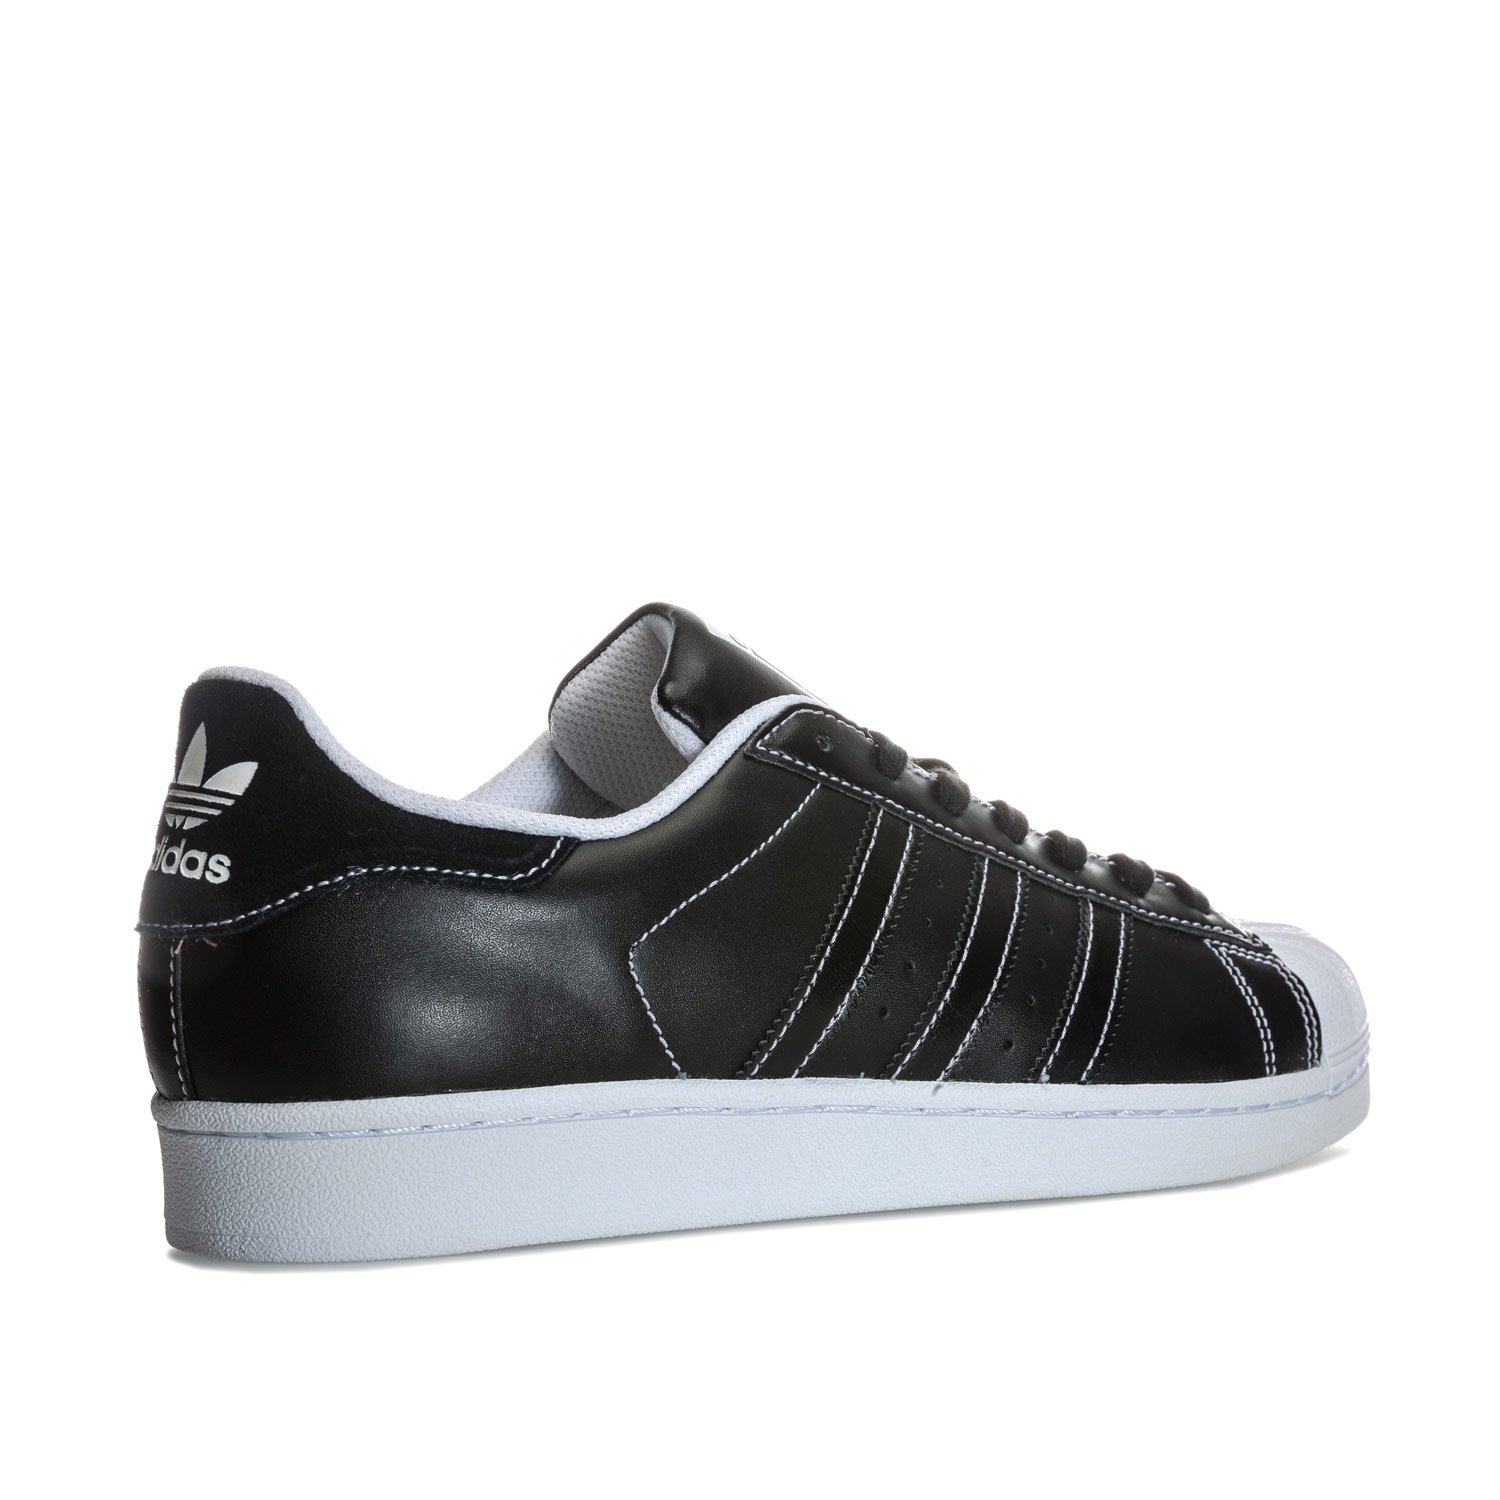 newest abfd4 c2667 adidas Mens Originals Mens Superstar Trainers in Black-White - UK 16  Amazon.co.uk Shoes  Bags